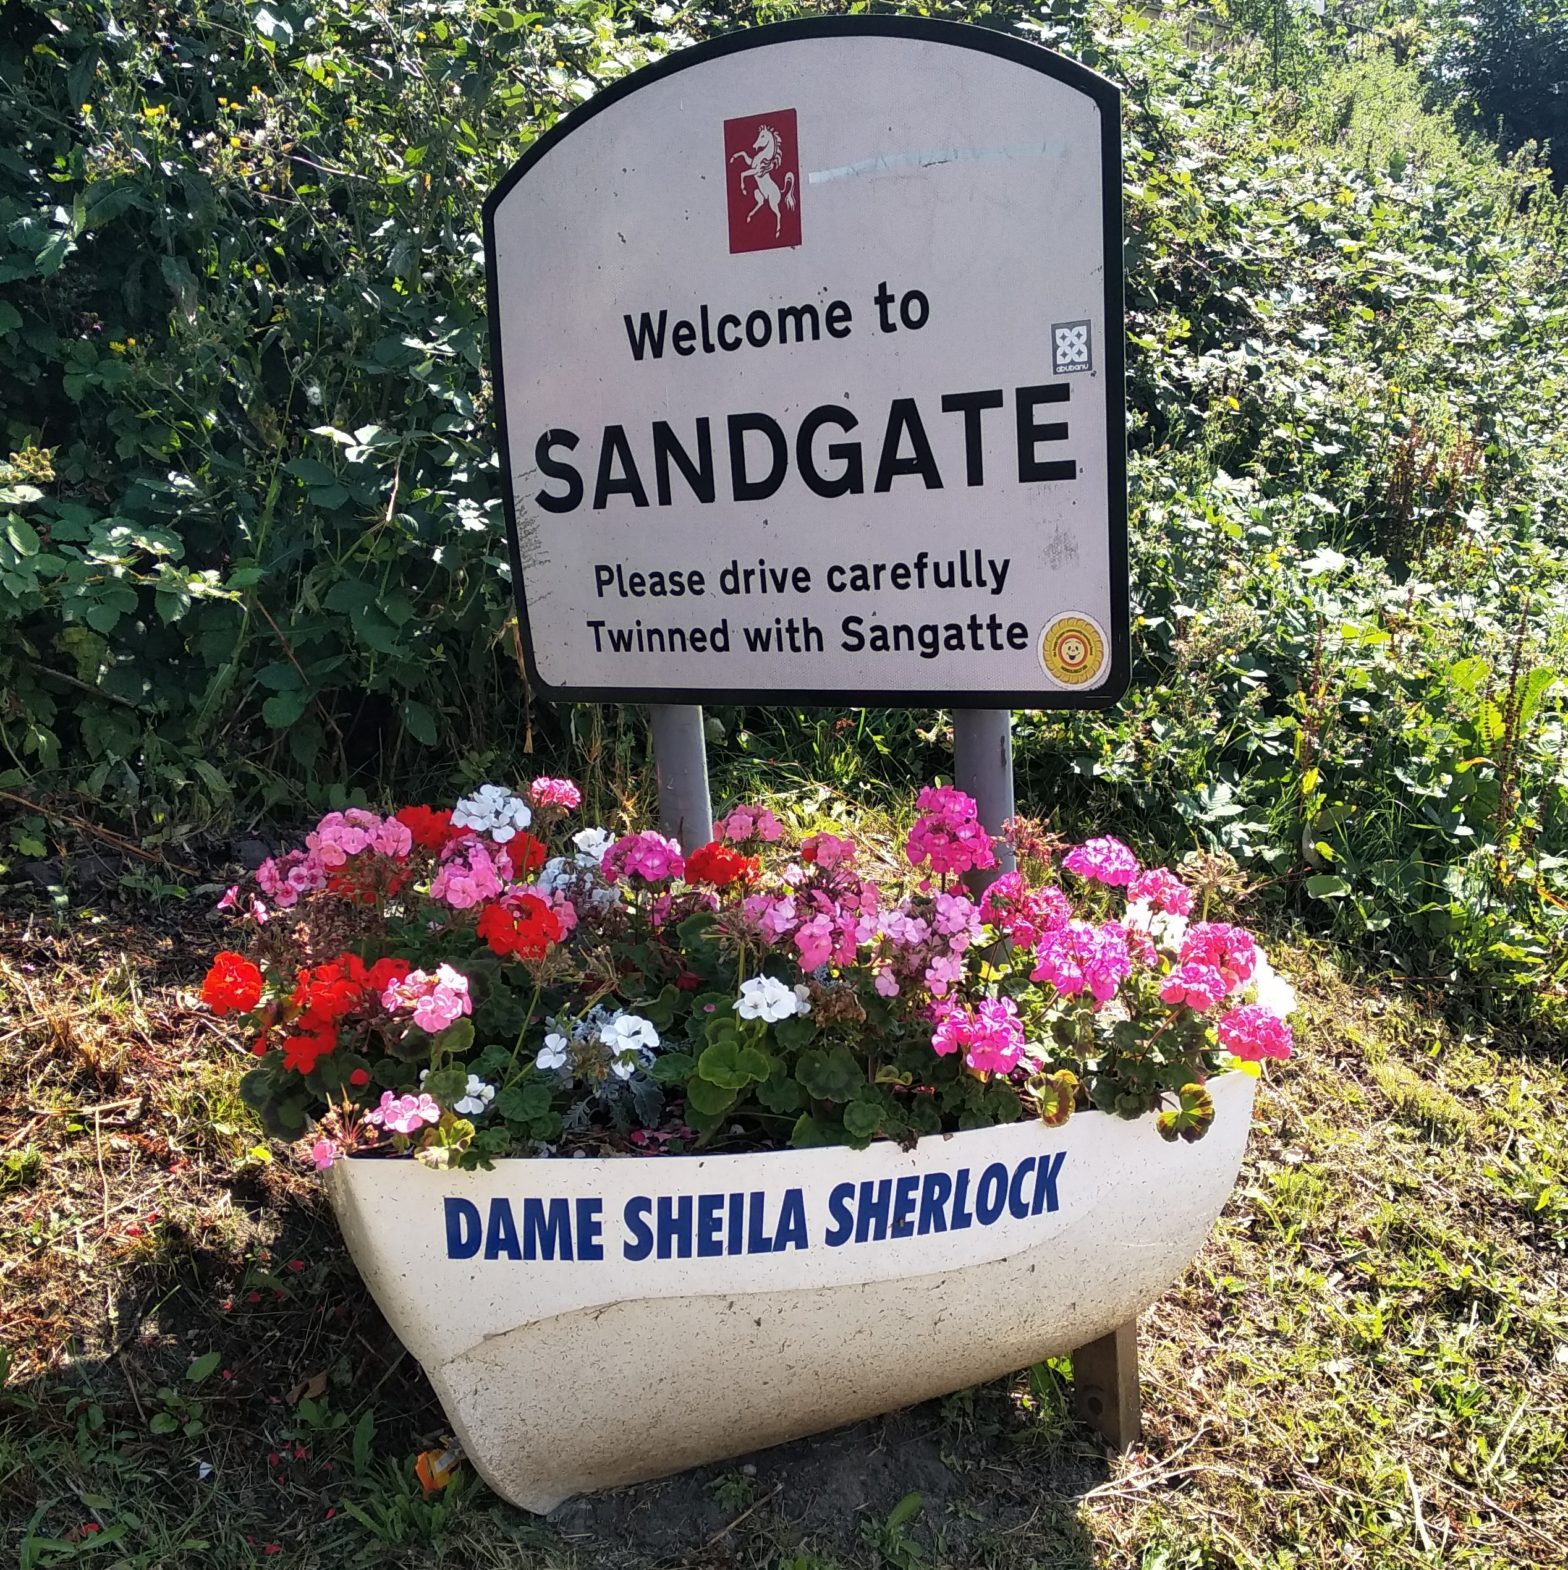 Welcome to Sandgate sign